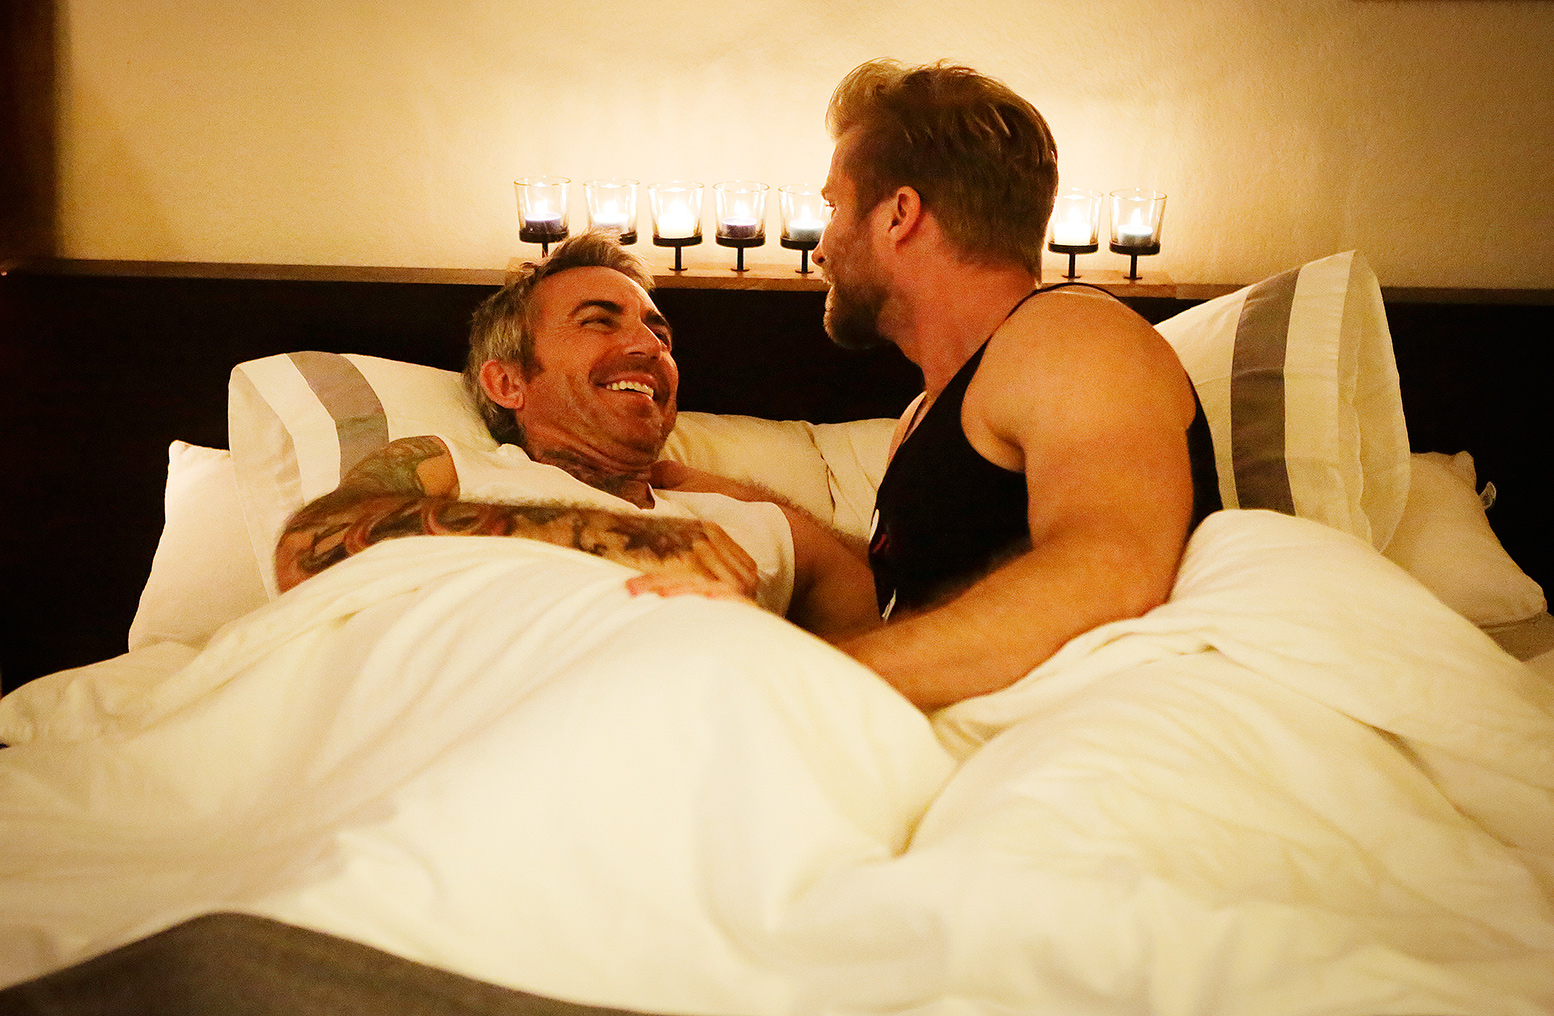 Newlyweds The First Year's Craig Ramsay and Brandon Liberati cuddling in bed